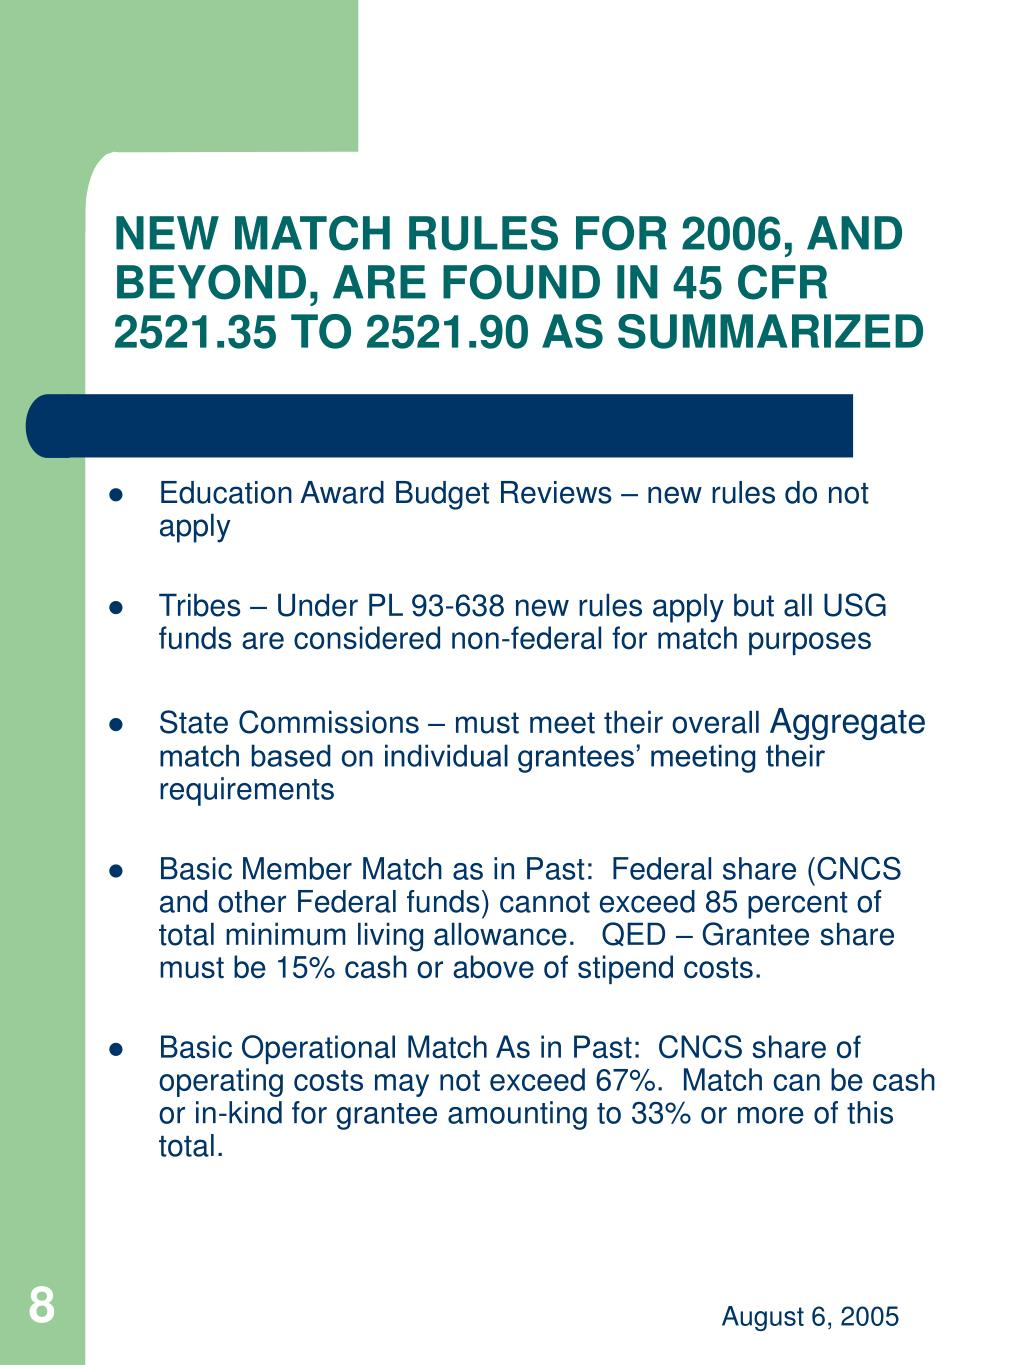 NEW MATCH RULES FOR 2006, AND BEYOND, ARE FOUND IN 45 CFR 2521.35 TO 2521.90 AS SUMMARIZED